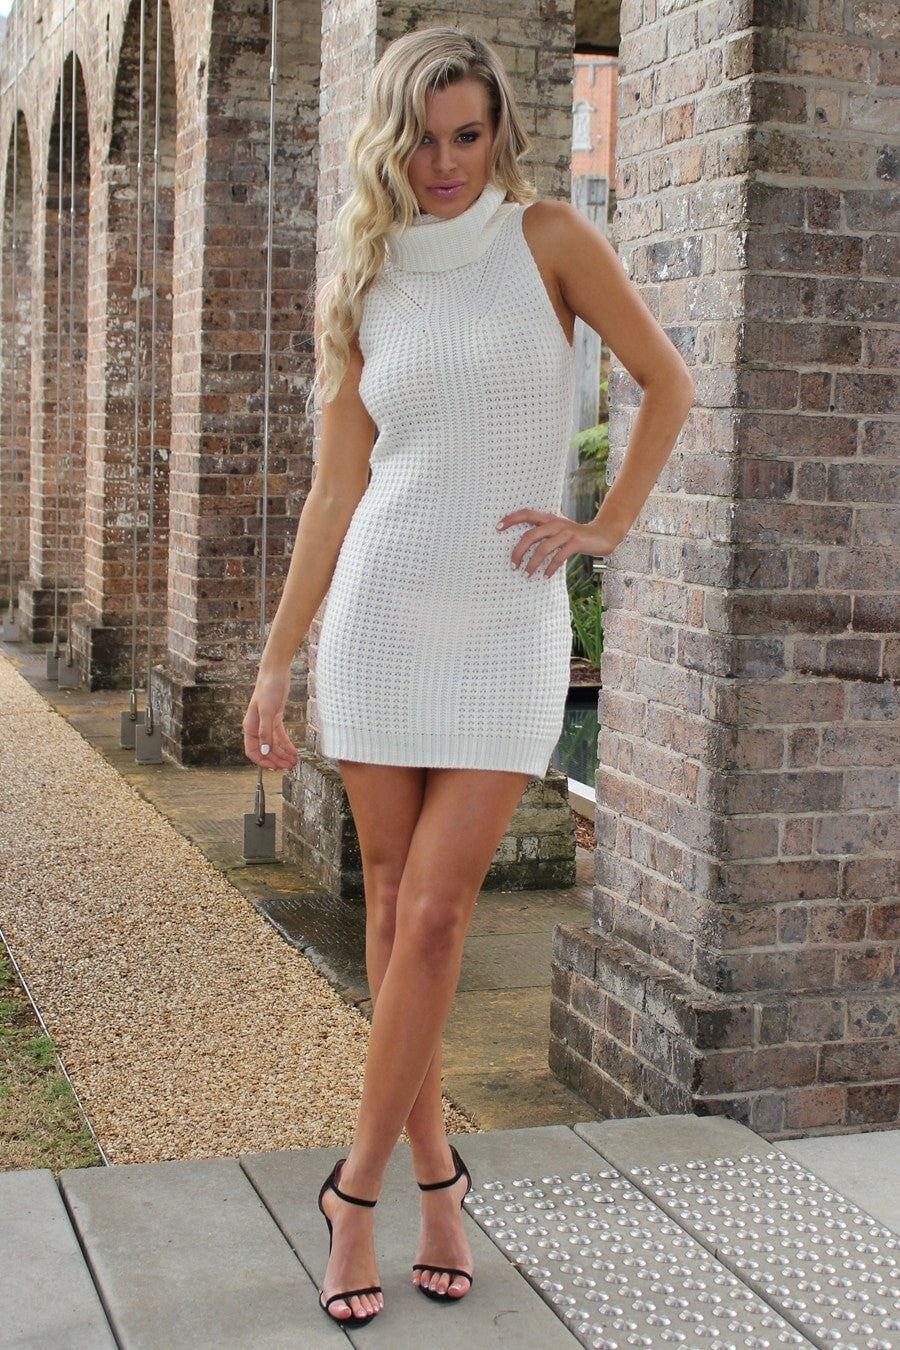 The Standout Cream Turtleneck Knit Dress